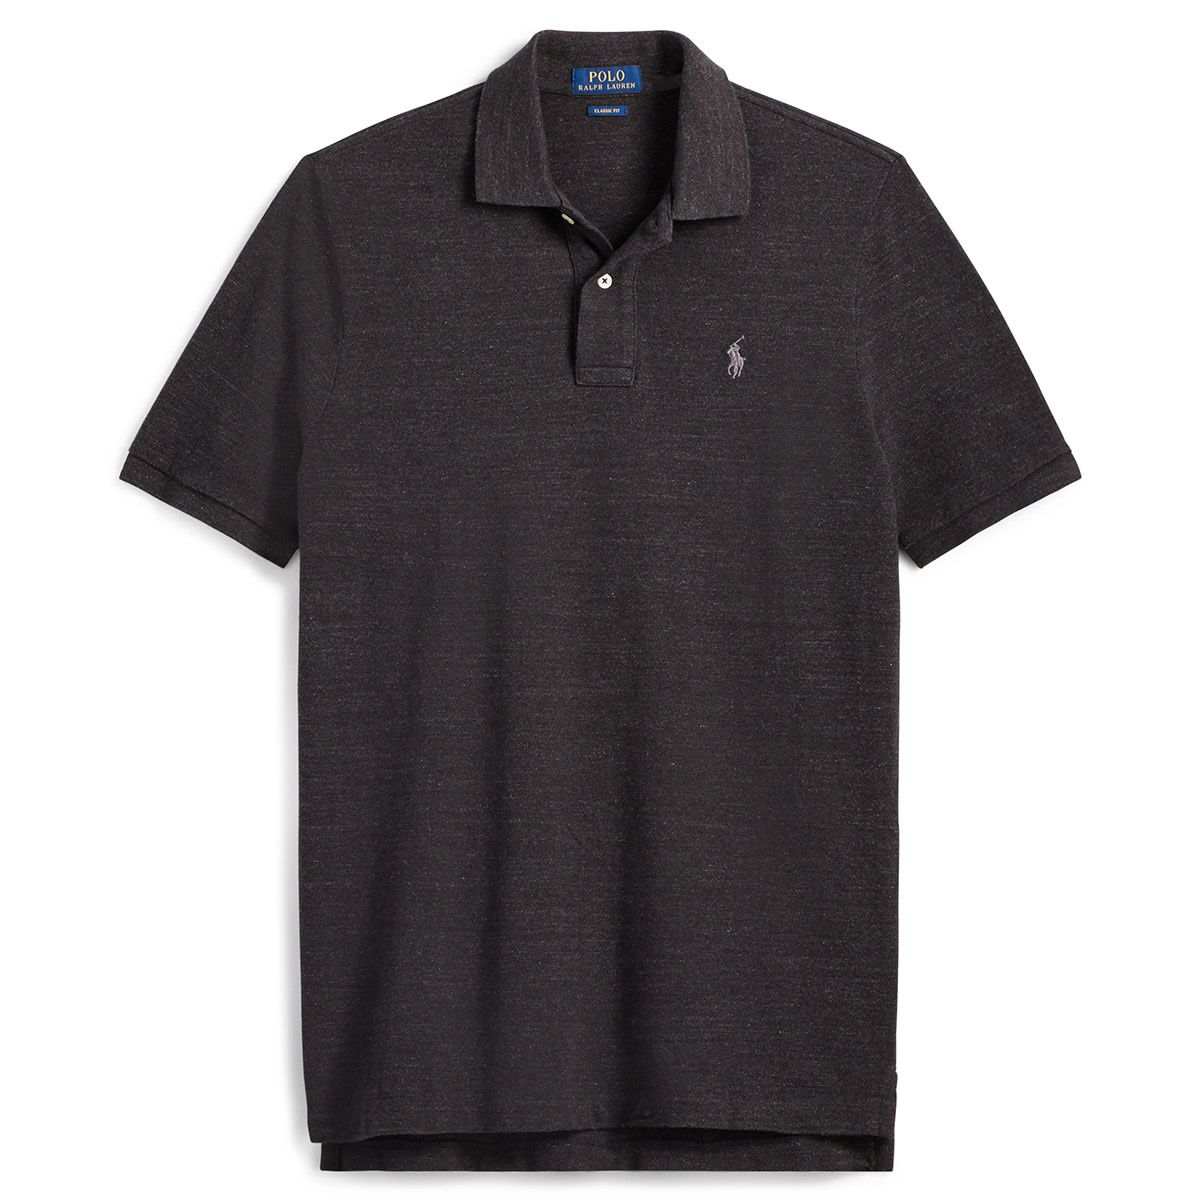 ea453b94055 Polo Ralph Lauren Mens Polo Shirts - Macy's